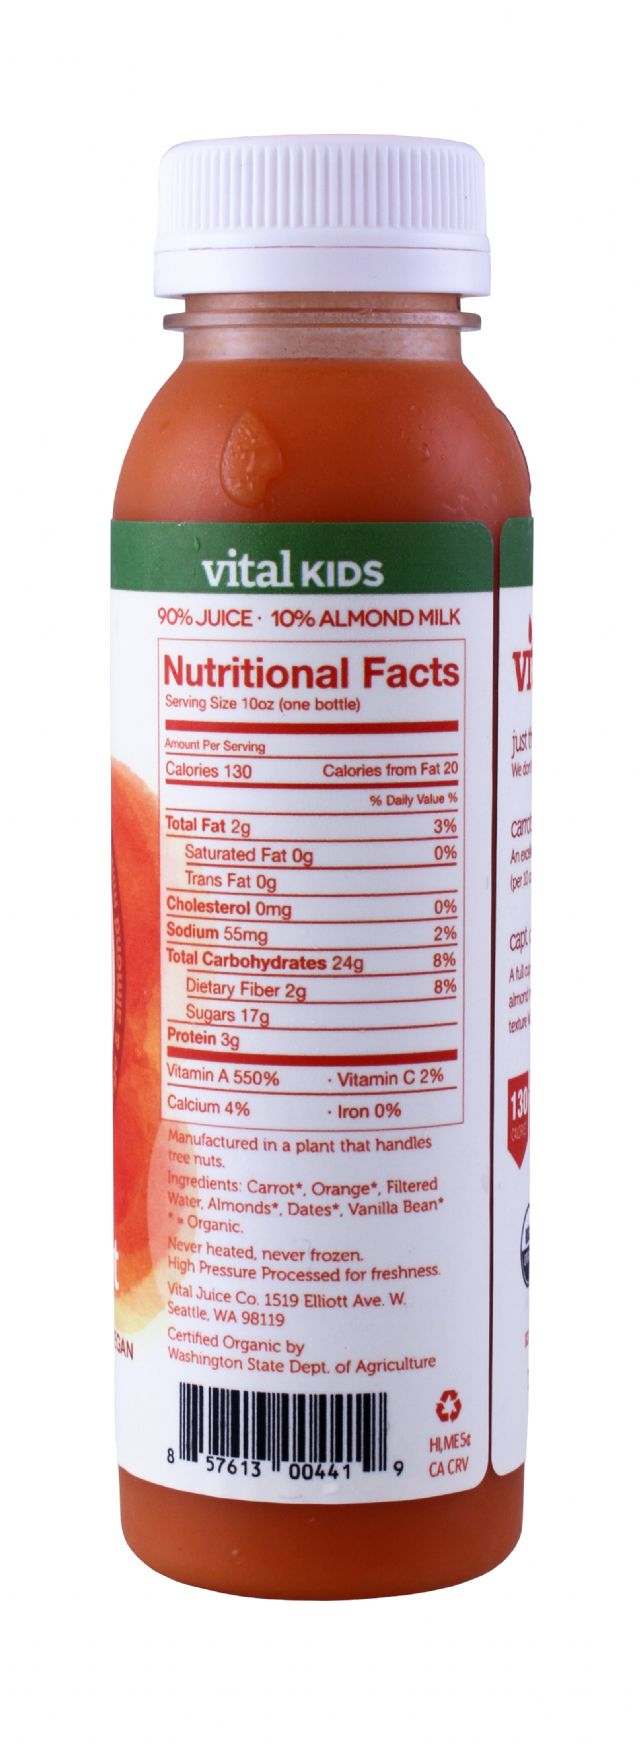 Vital Juice: VitalKids CaptCarrot Facts